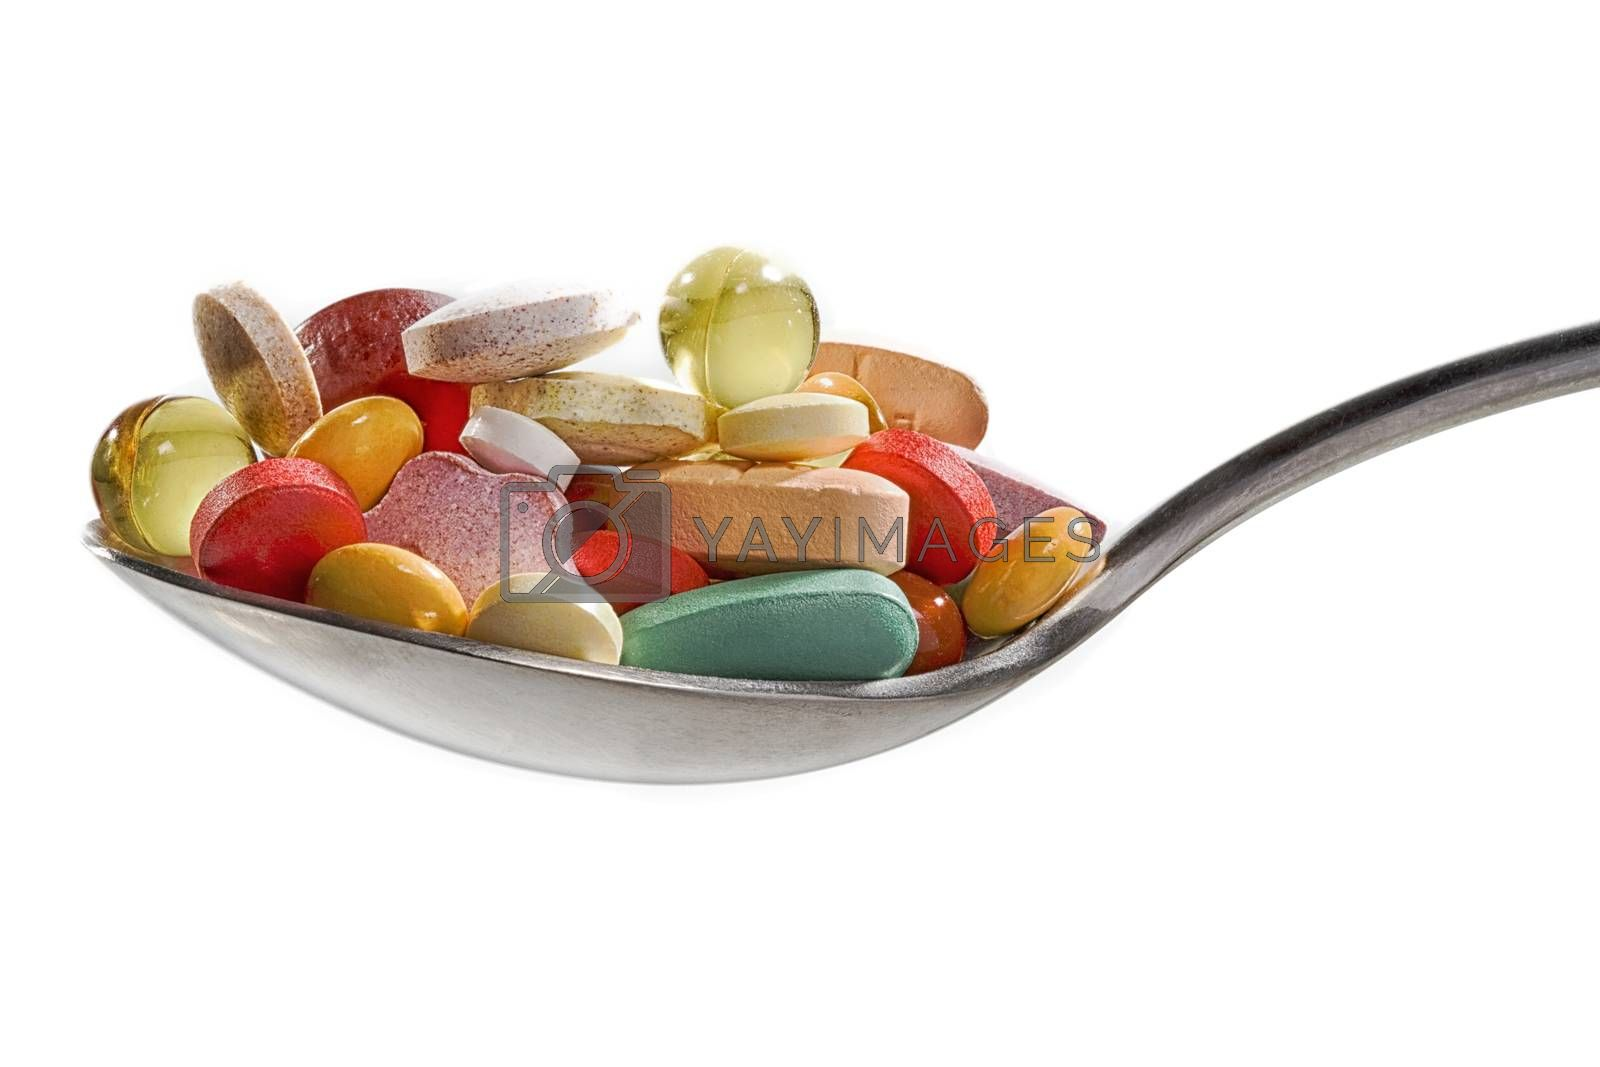 Medicine pills or capsules in a spoon. Drug prescription for treatment medication. Pharmaceutical medicament, cure in container for health. Antibiotic, painkiller closeup